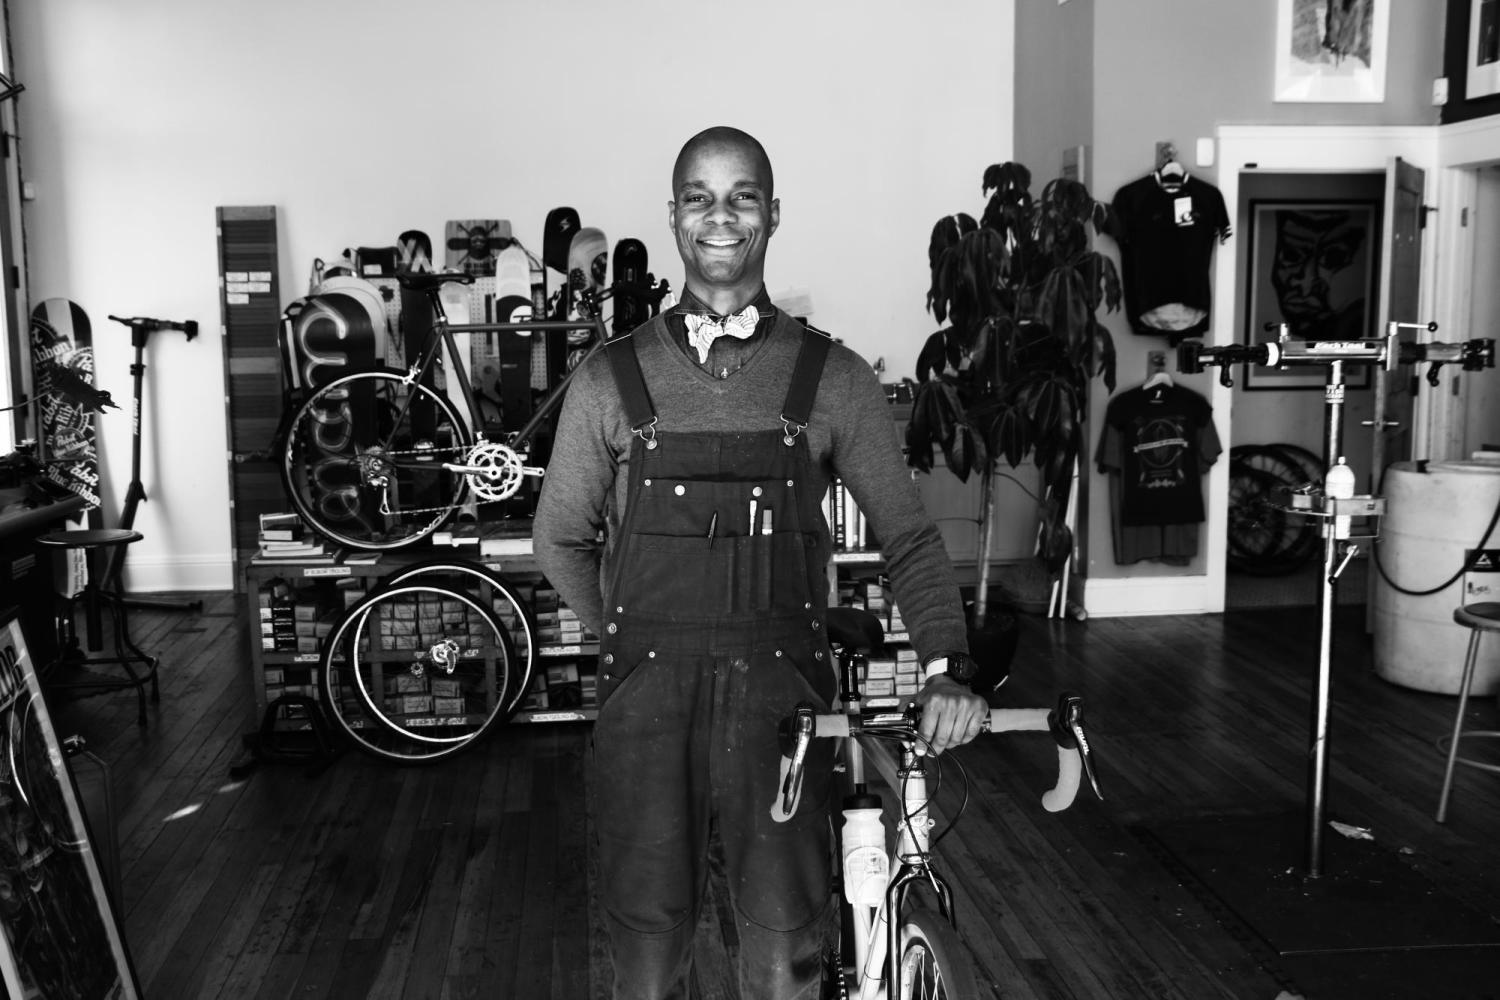 Gregory Crichlow in his bike shop called Chocolate Spokes